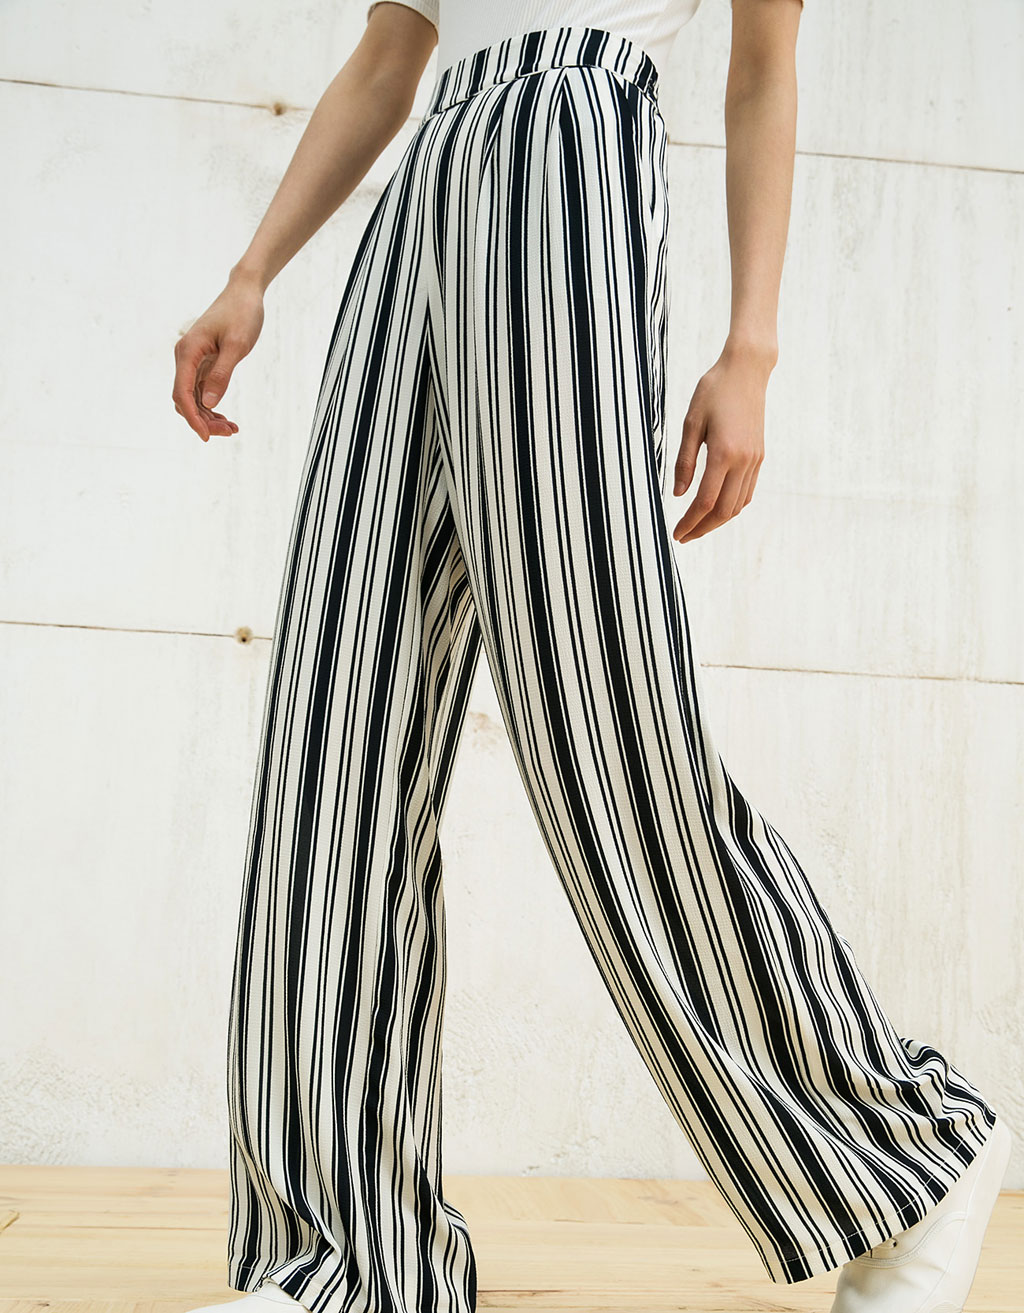 Pleated wide flowy trousers